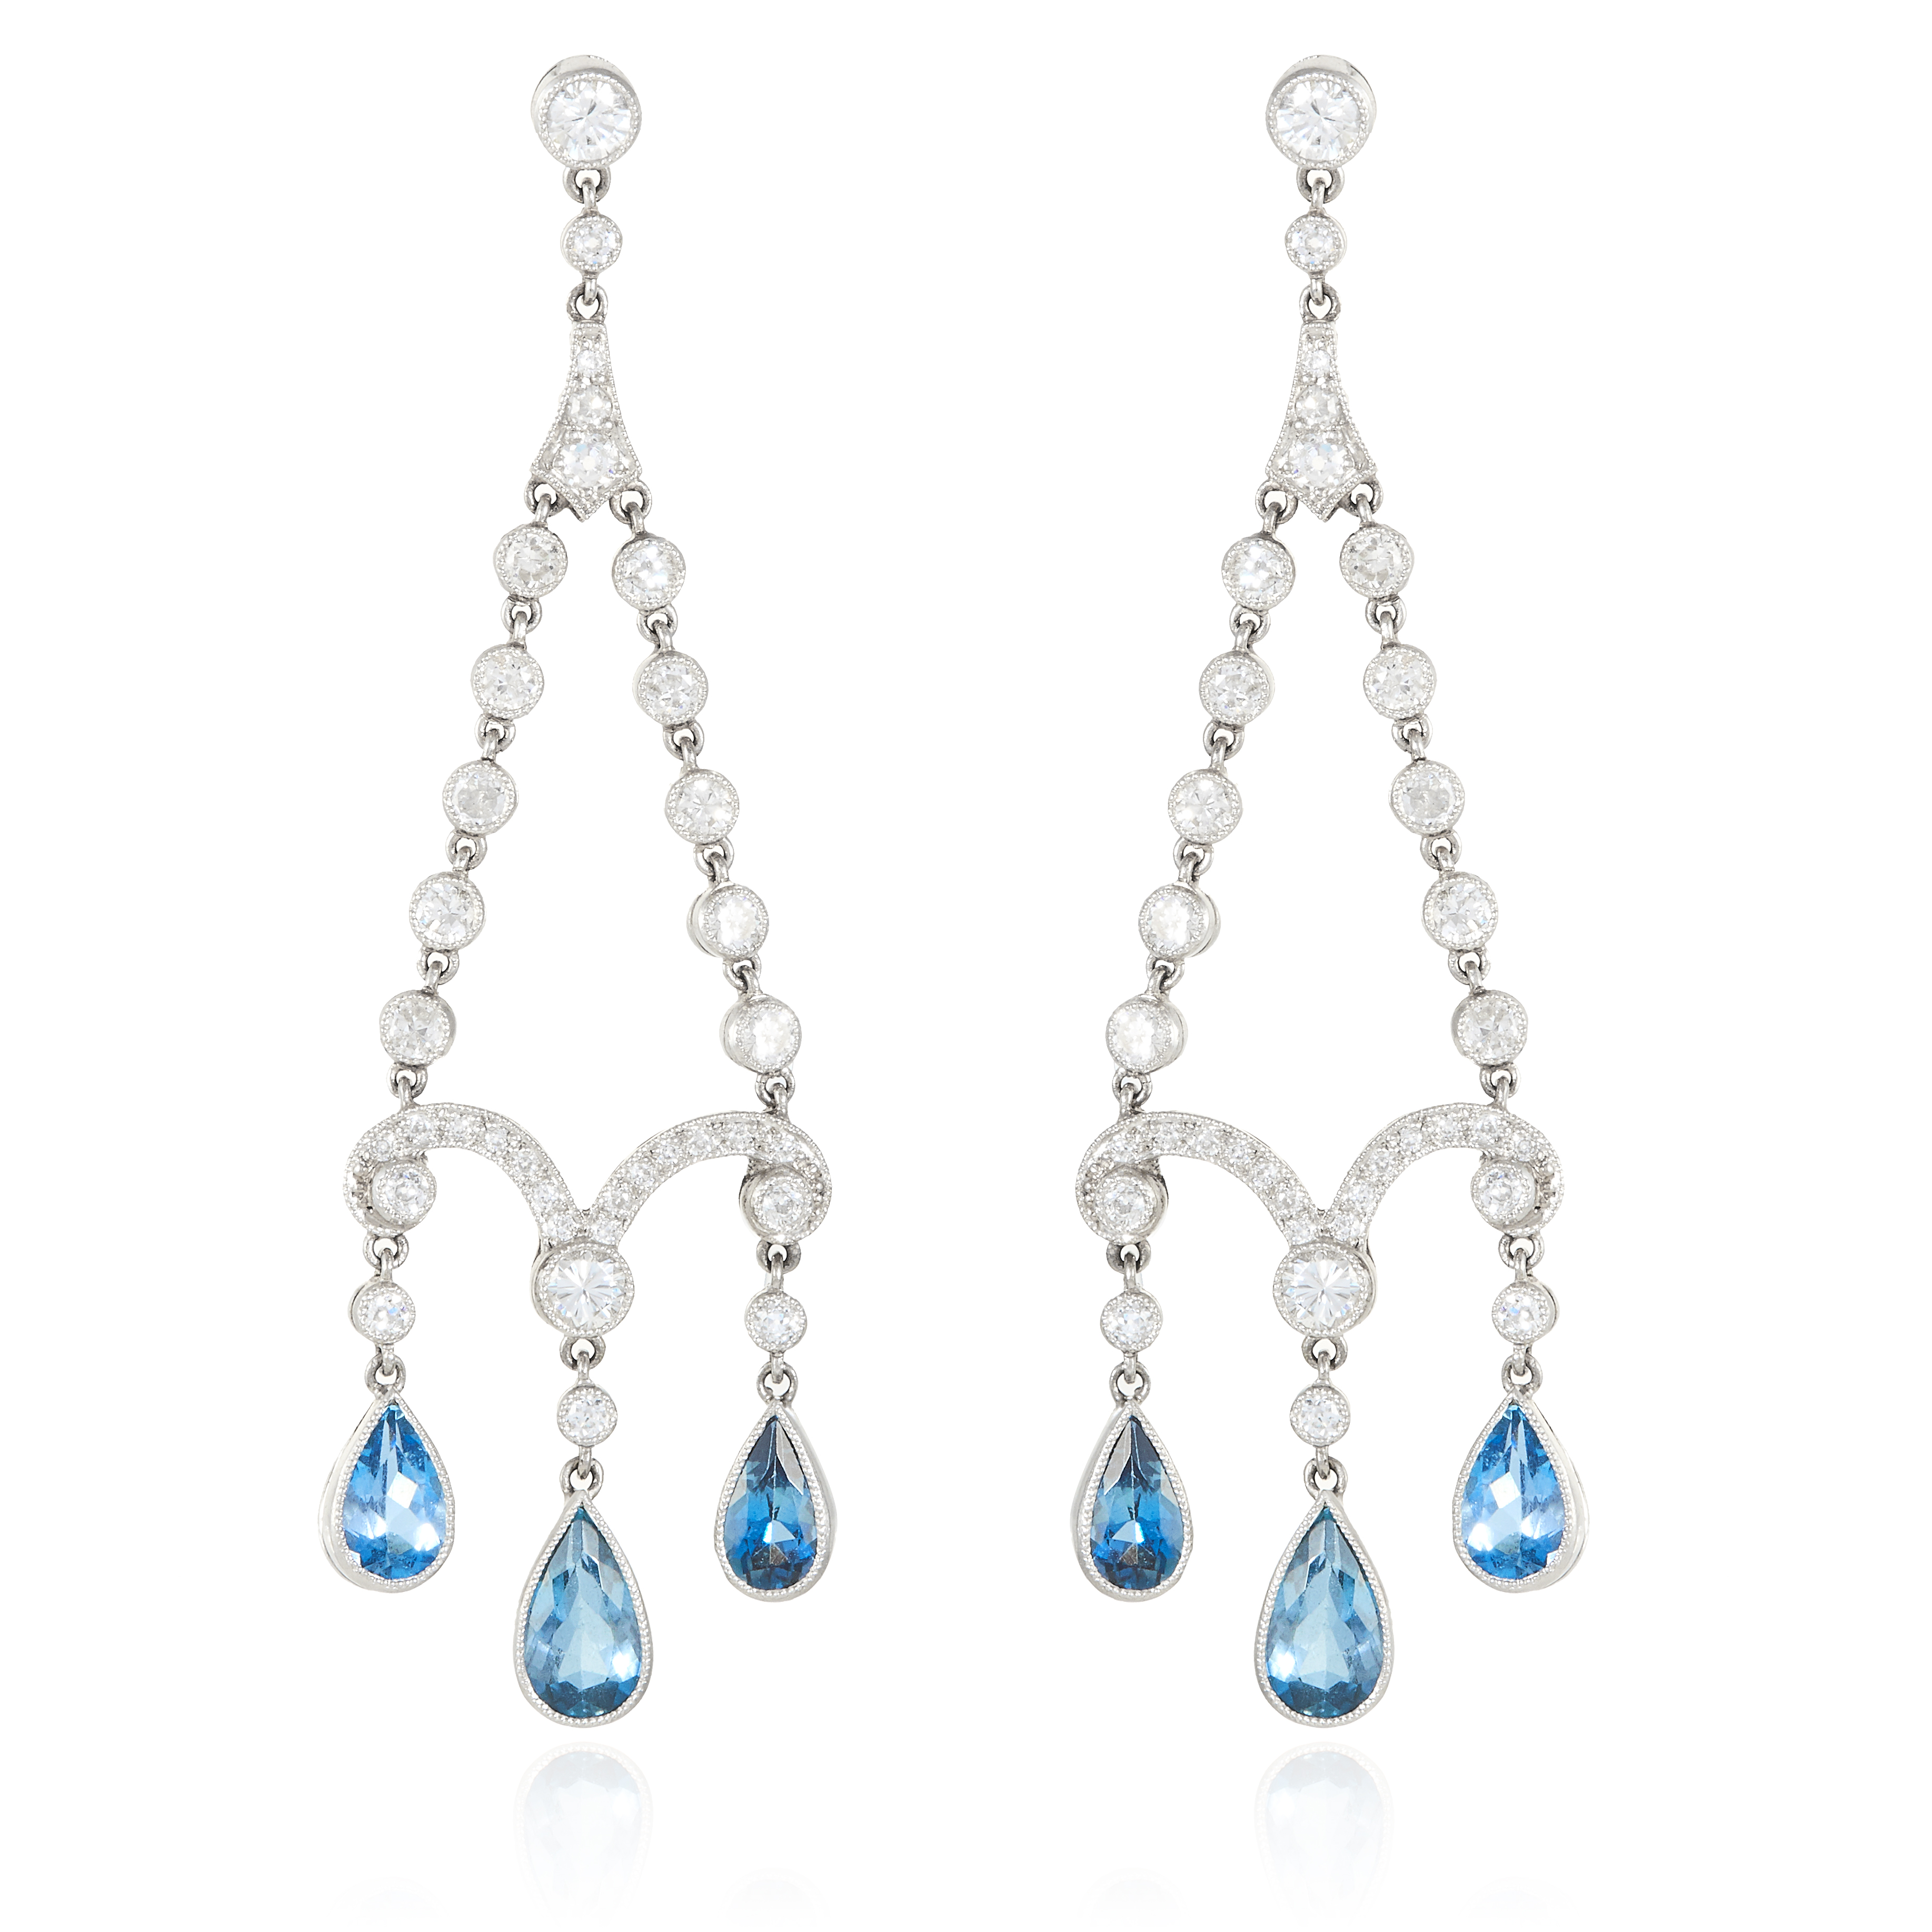 A PAIR OF DIAMOND AND AQUAMARINE CHANDELIER EARRINGS, CIRCA 1920s in white gold or platinum,